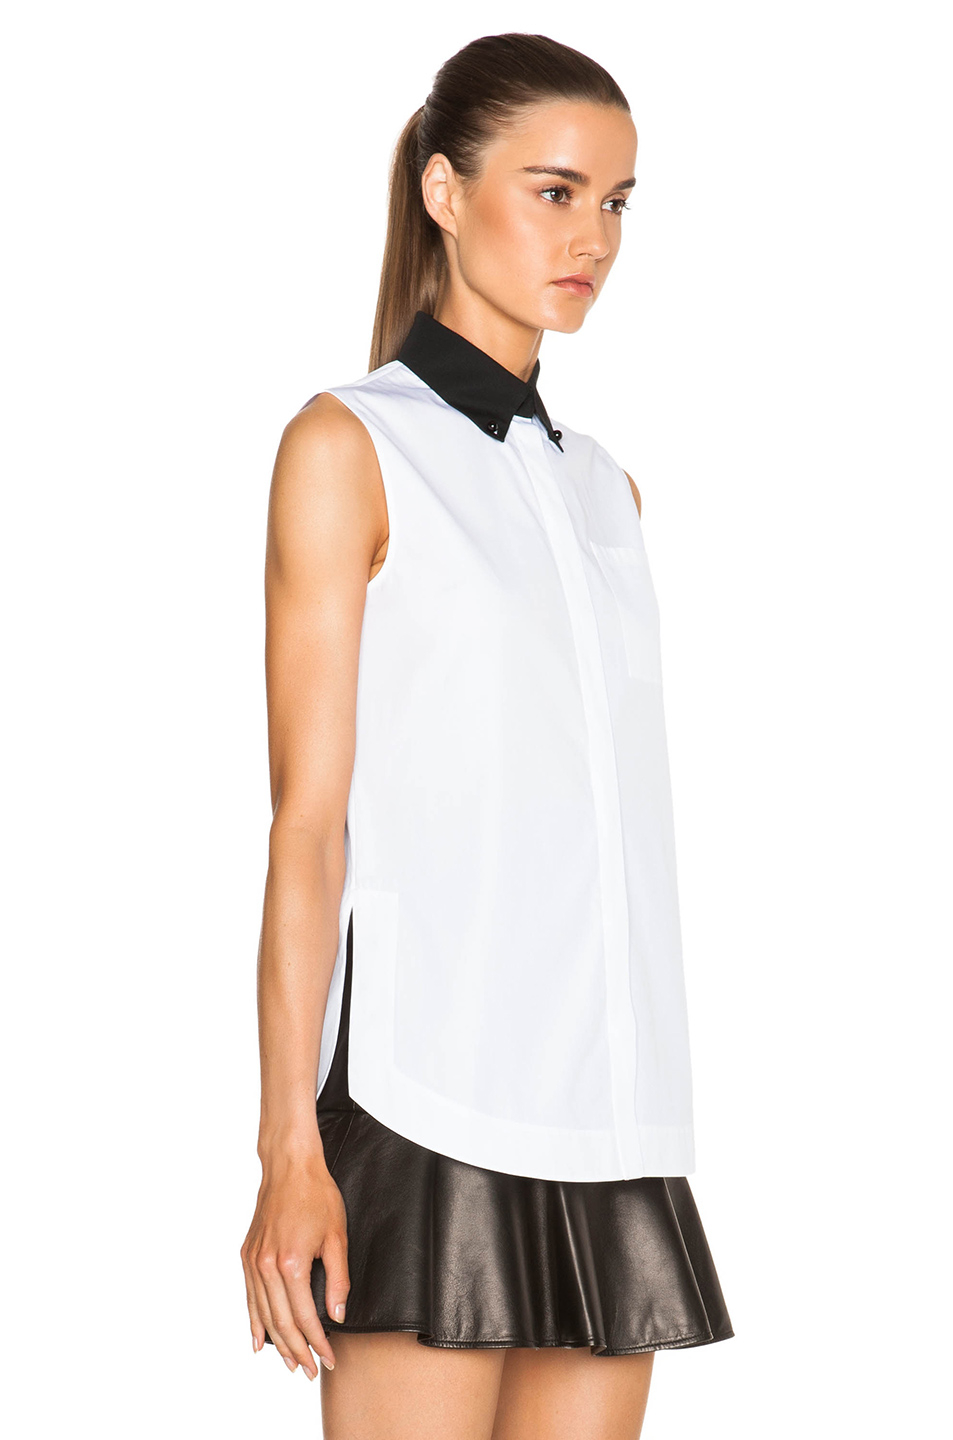 Givenchy Contrast Collar Sleeveless Poplin Shirt With